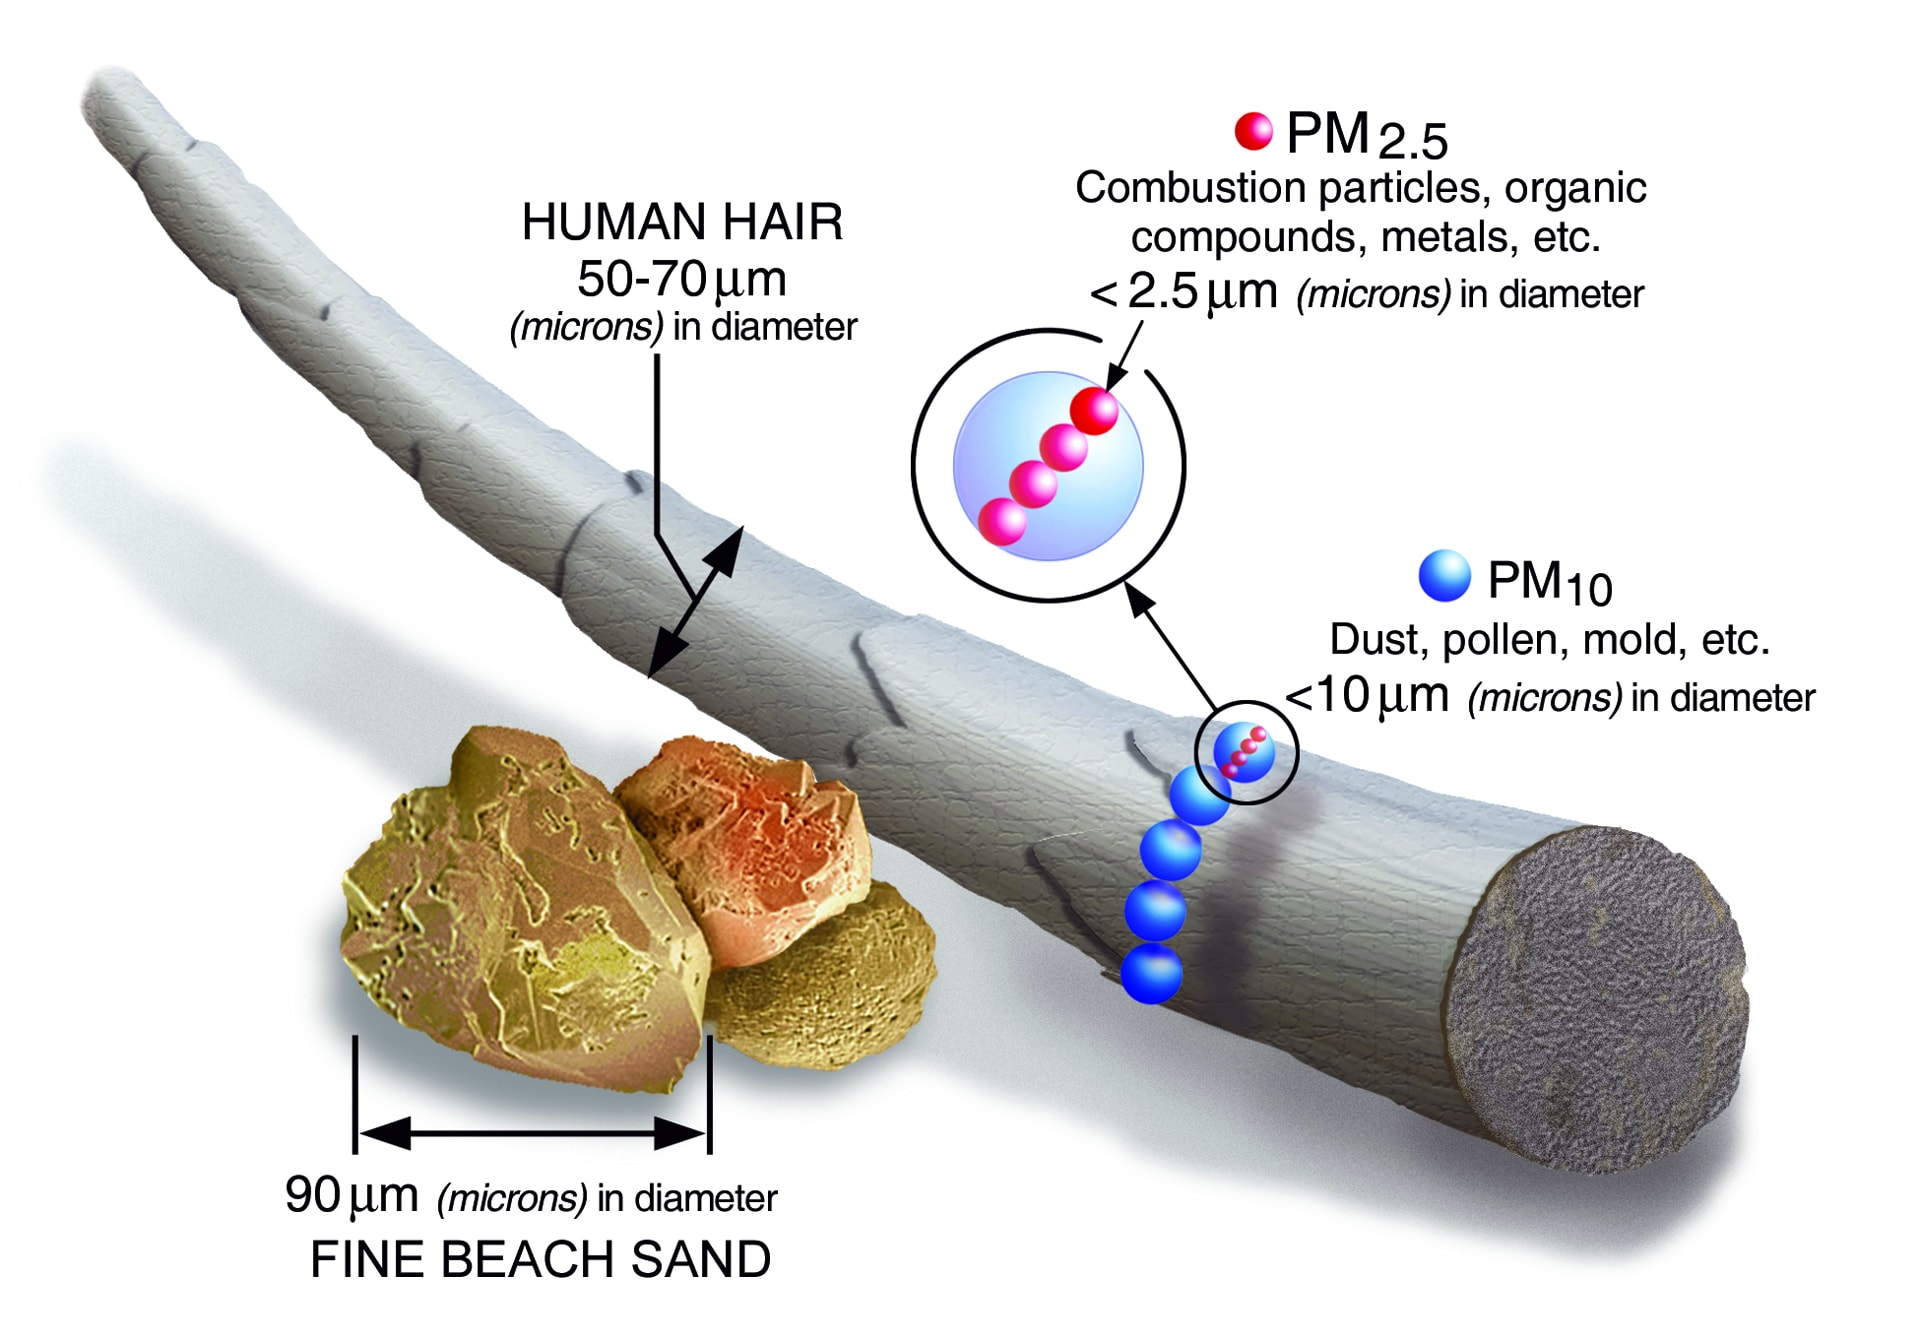 PM 2.5 and PM10